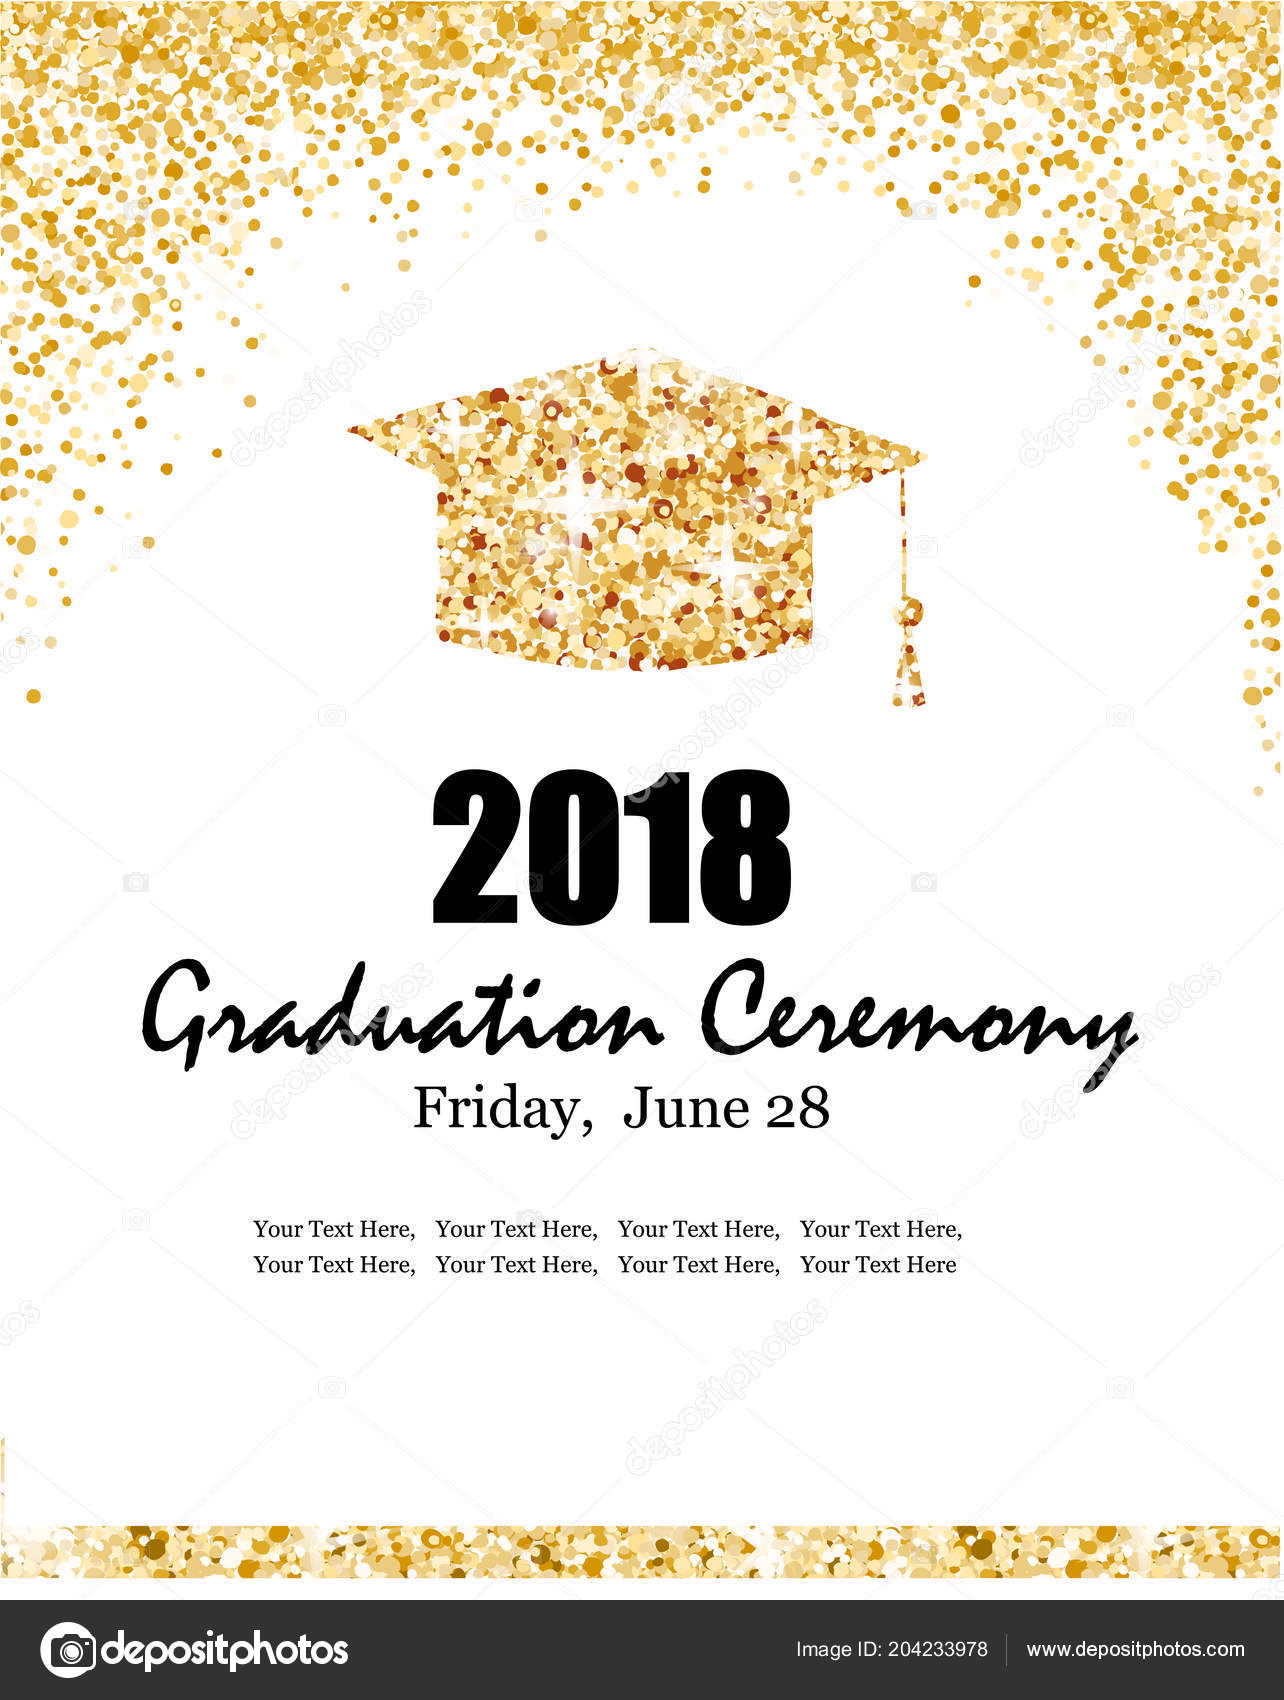 class 2018 graduation ceremony banner graduate hat gold confetti